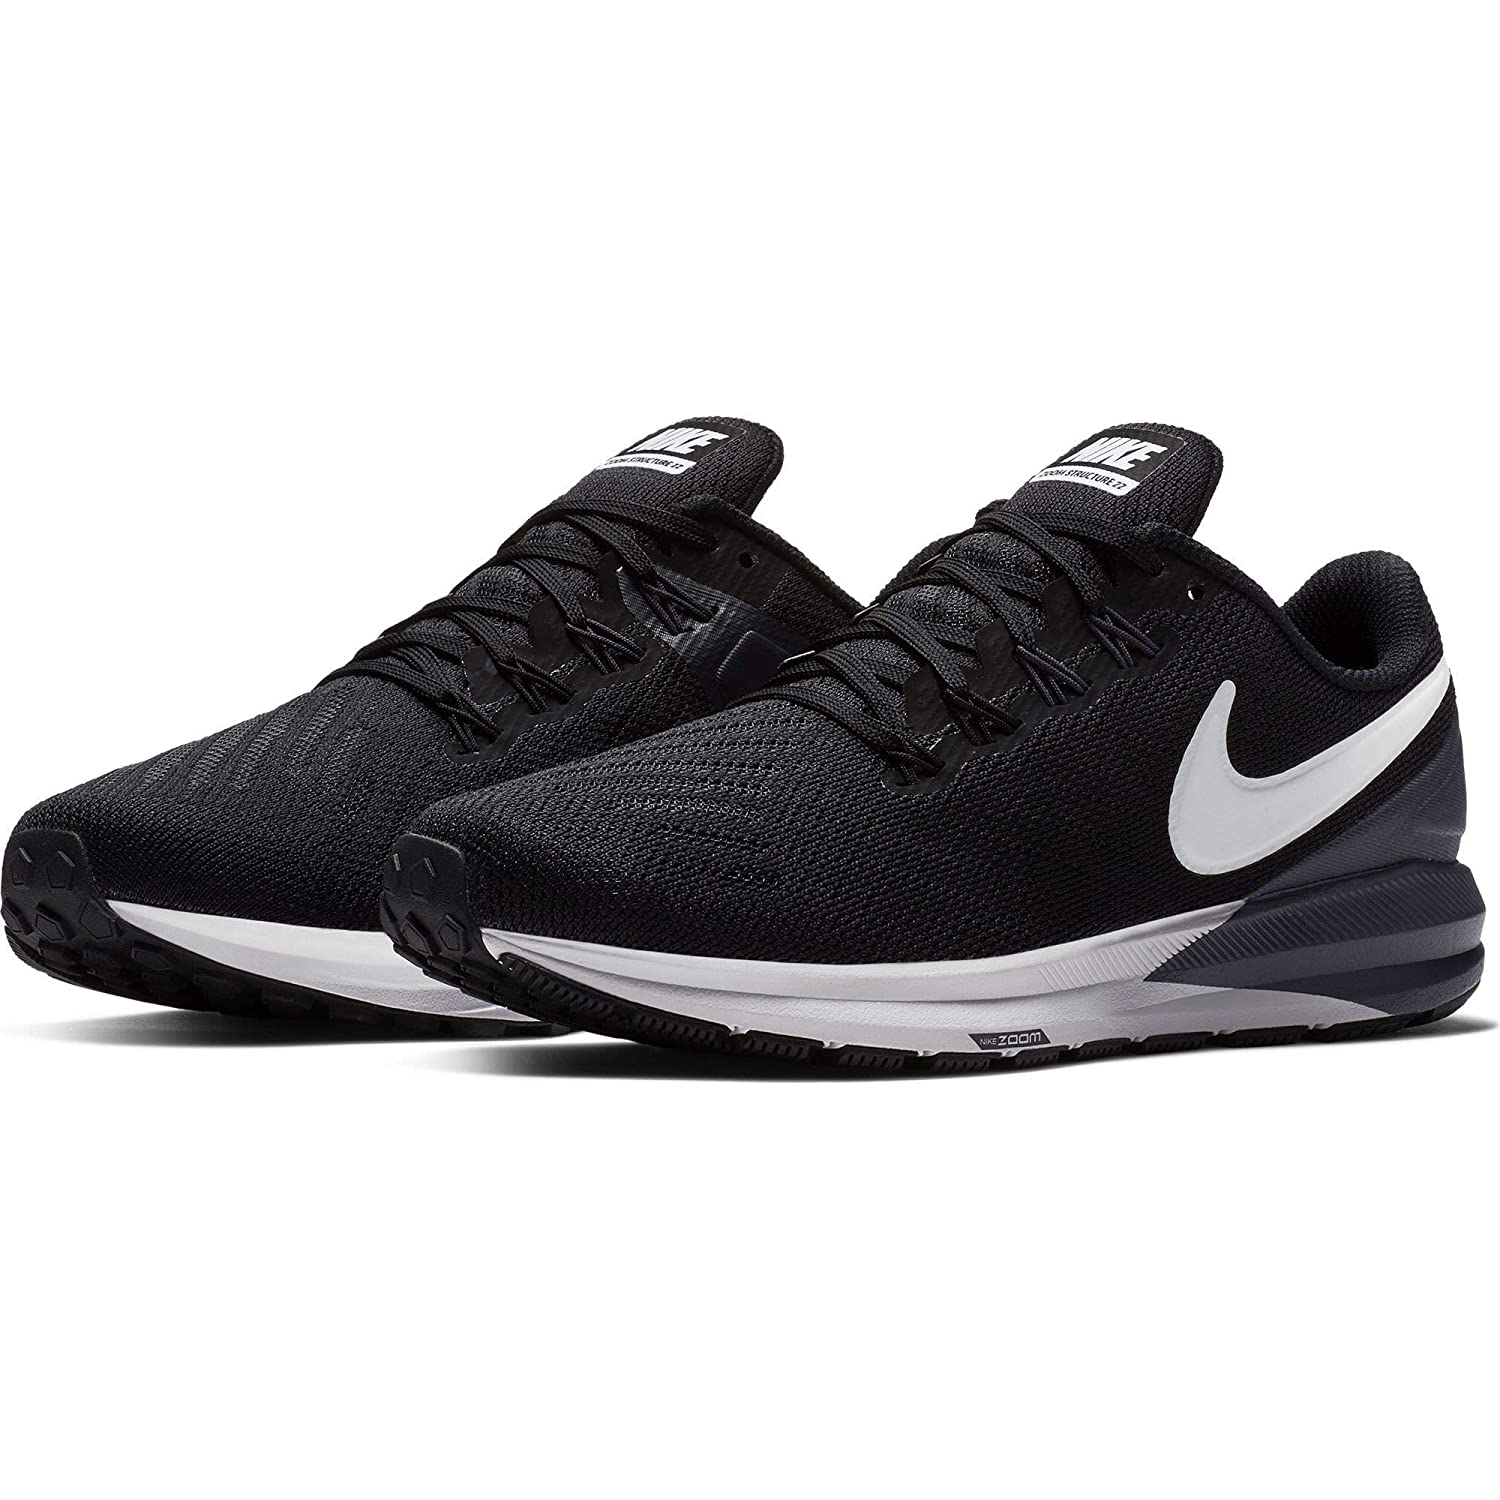 reputable site e8500 9433e Nike Air Zoom Structure 22 Women's Running Shoe (8.5 W US,  Black/White/Gridiron)